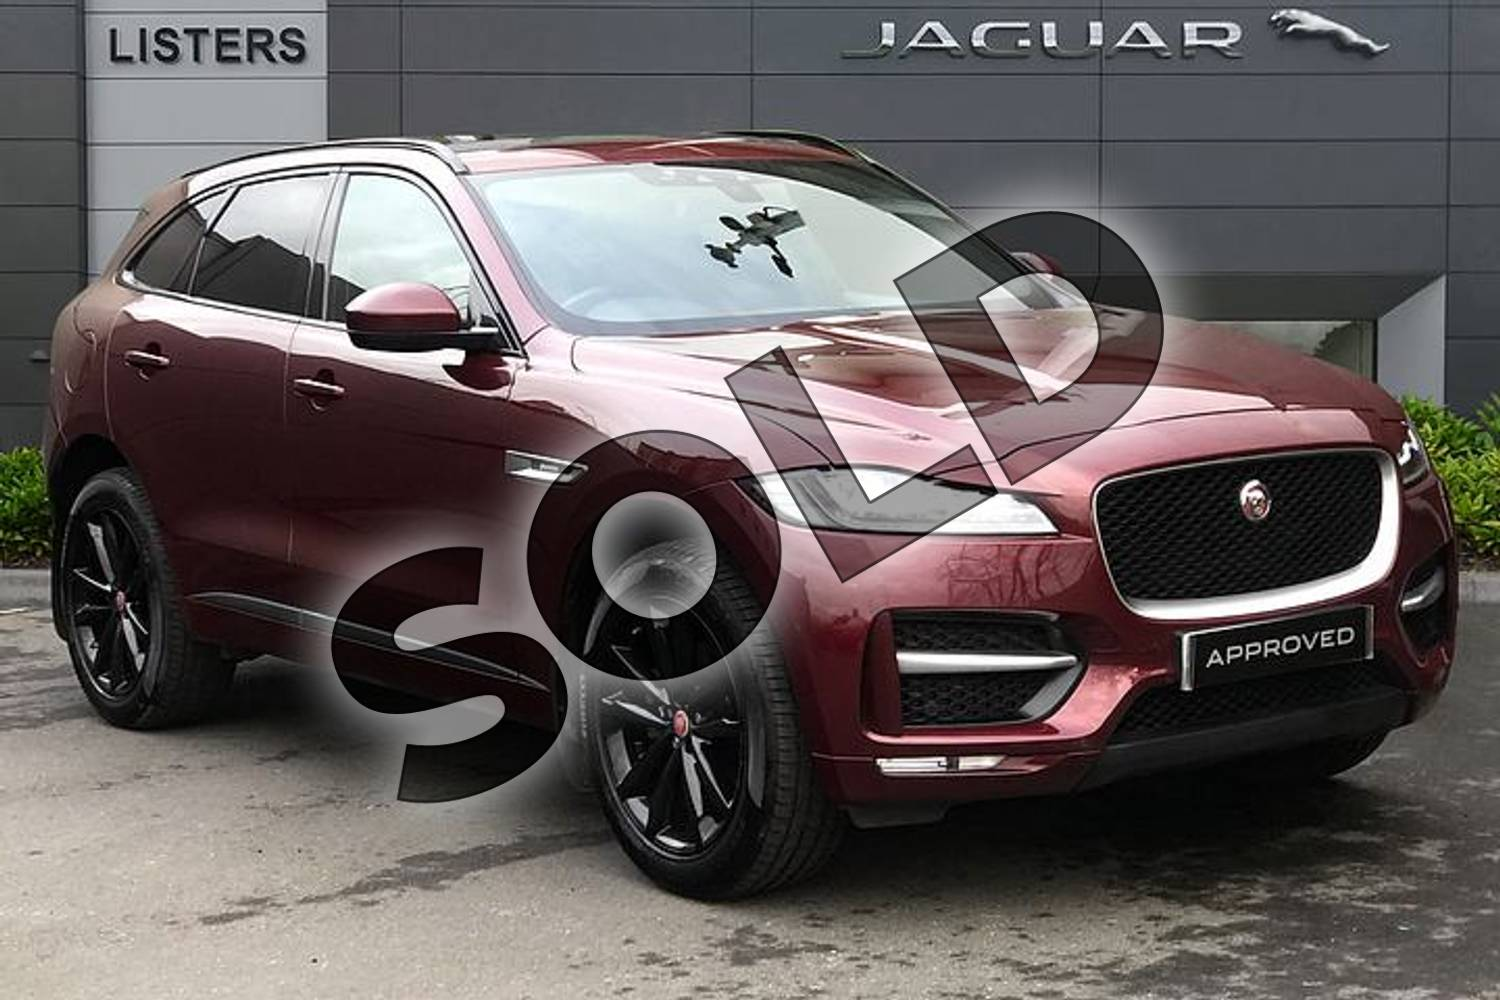 2017 Jaguar F-PACE Diesel Estate 2.0d R-Sport 5dr Auto AWD in Montalcino Red at Listers Jaguar Droitwich